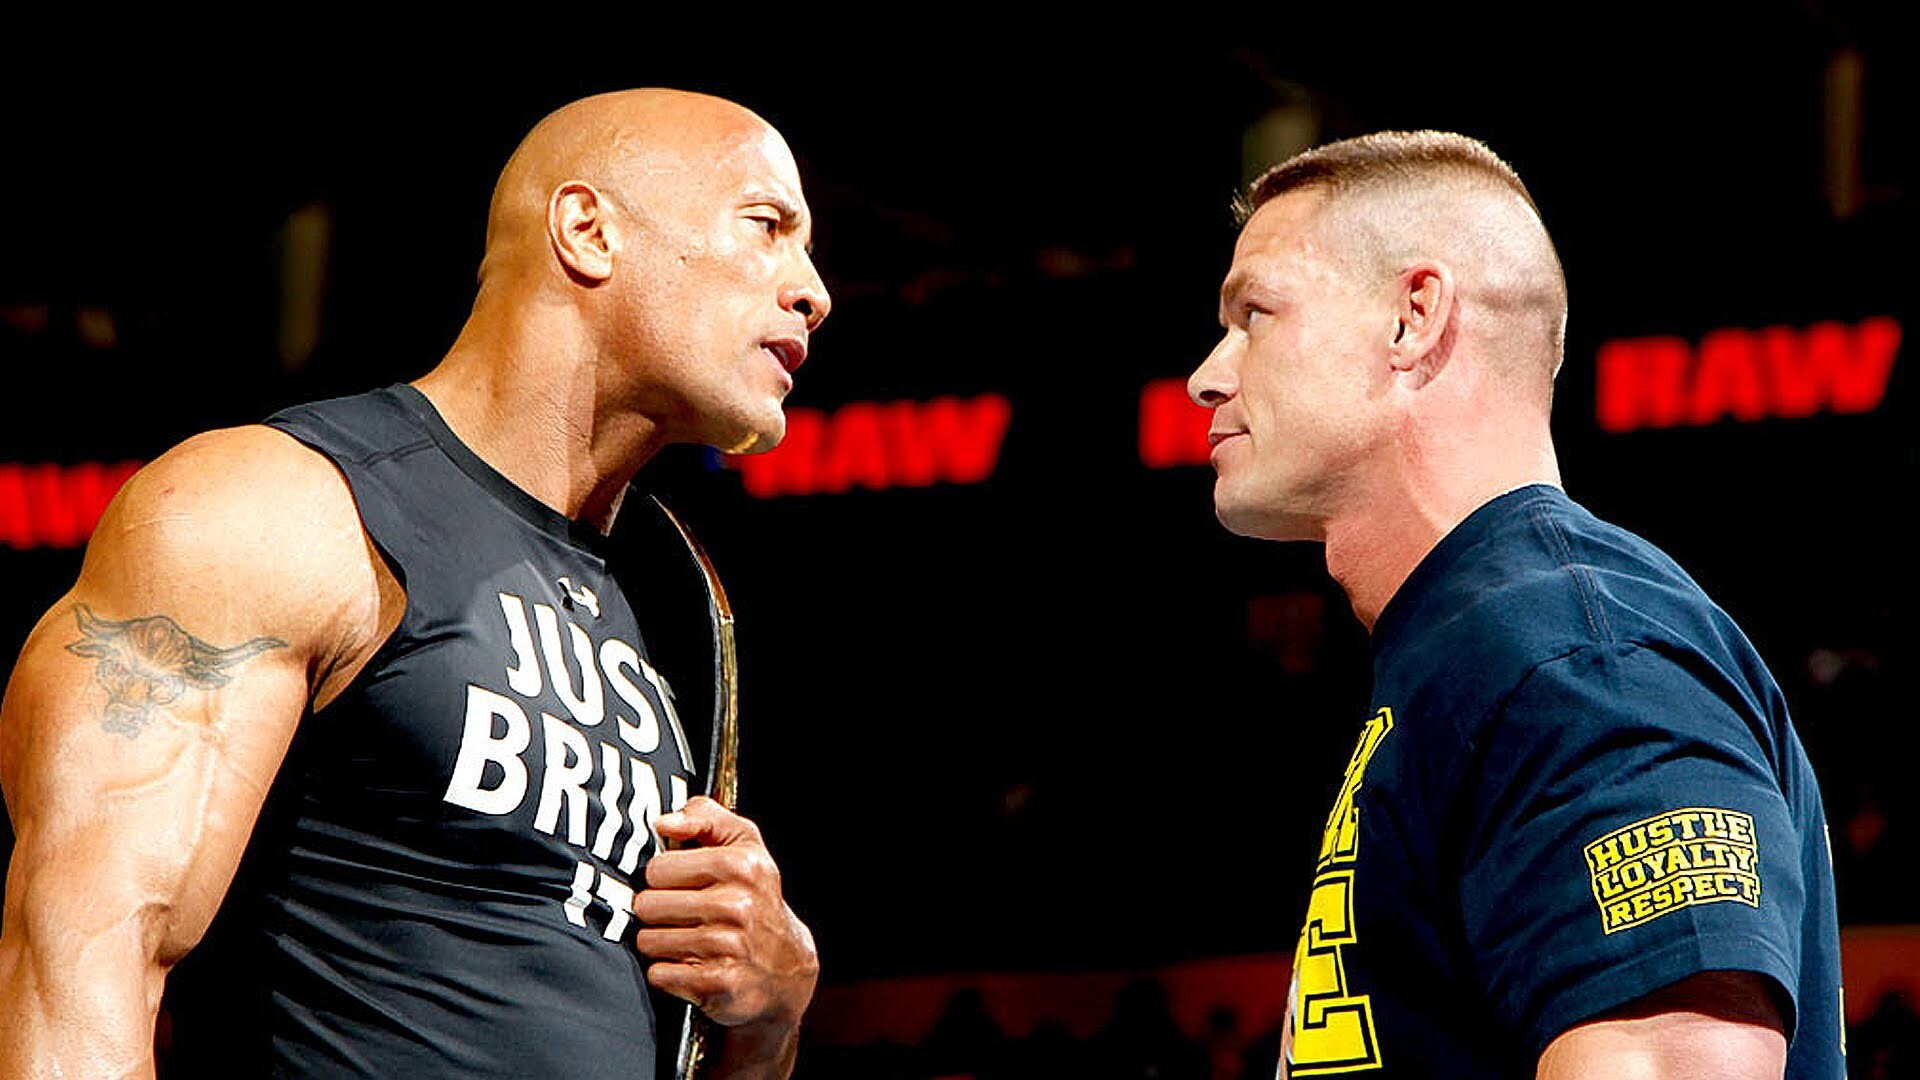 john cena and rock popular wrestler of wwe hd wallpapers | hd wallpapers